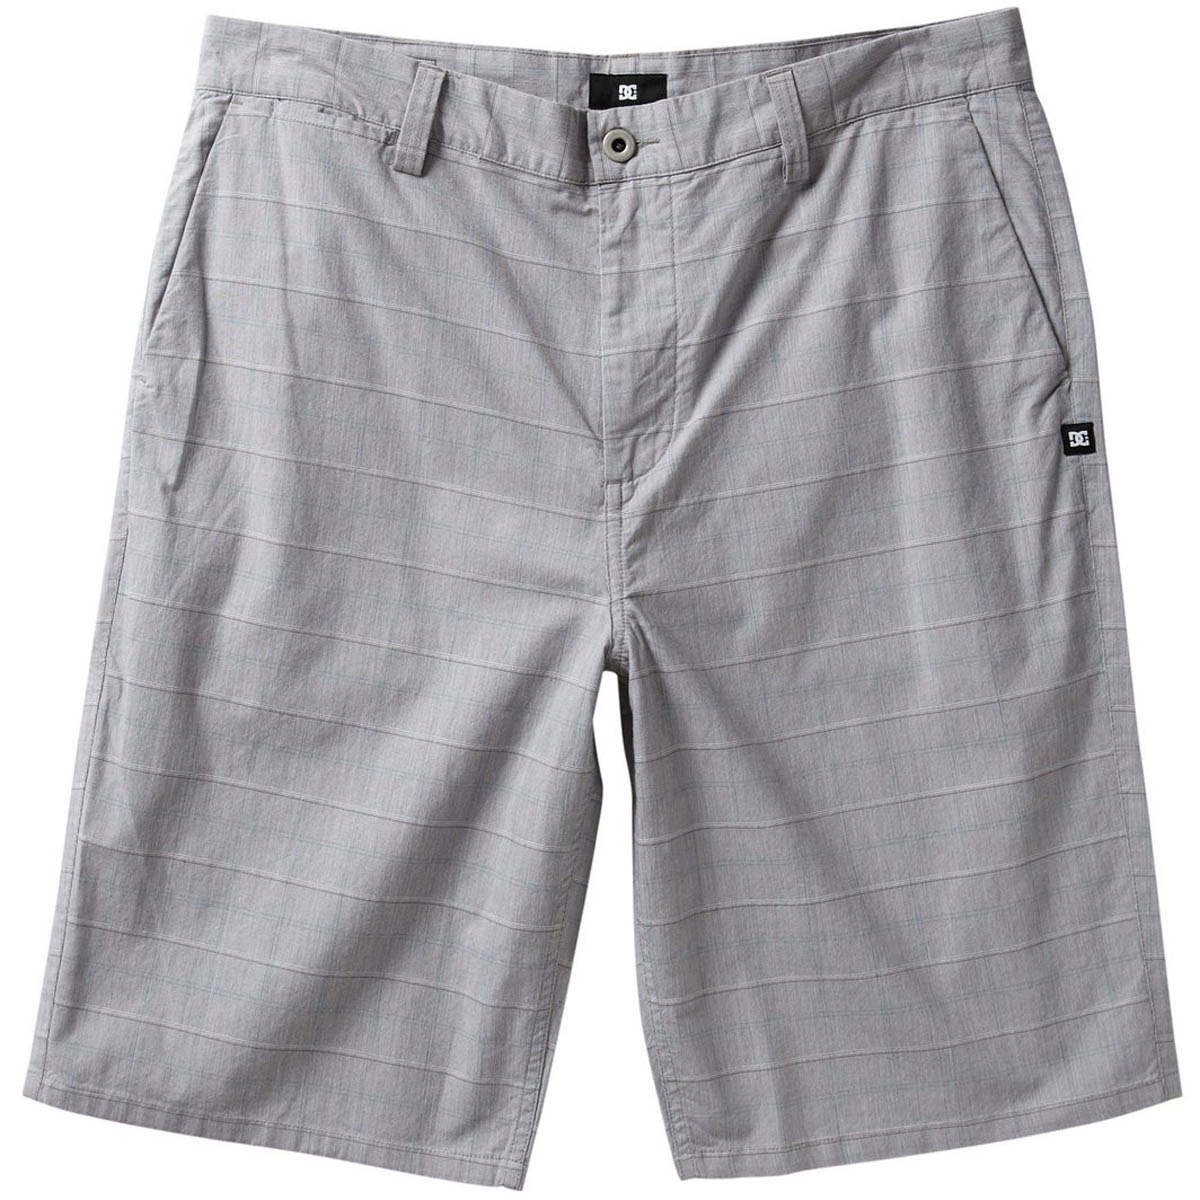 DC Falcon Men's Chino Shorts-53810070